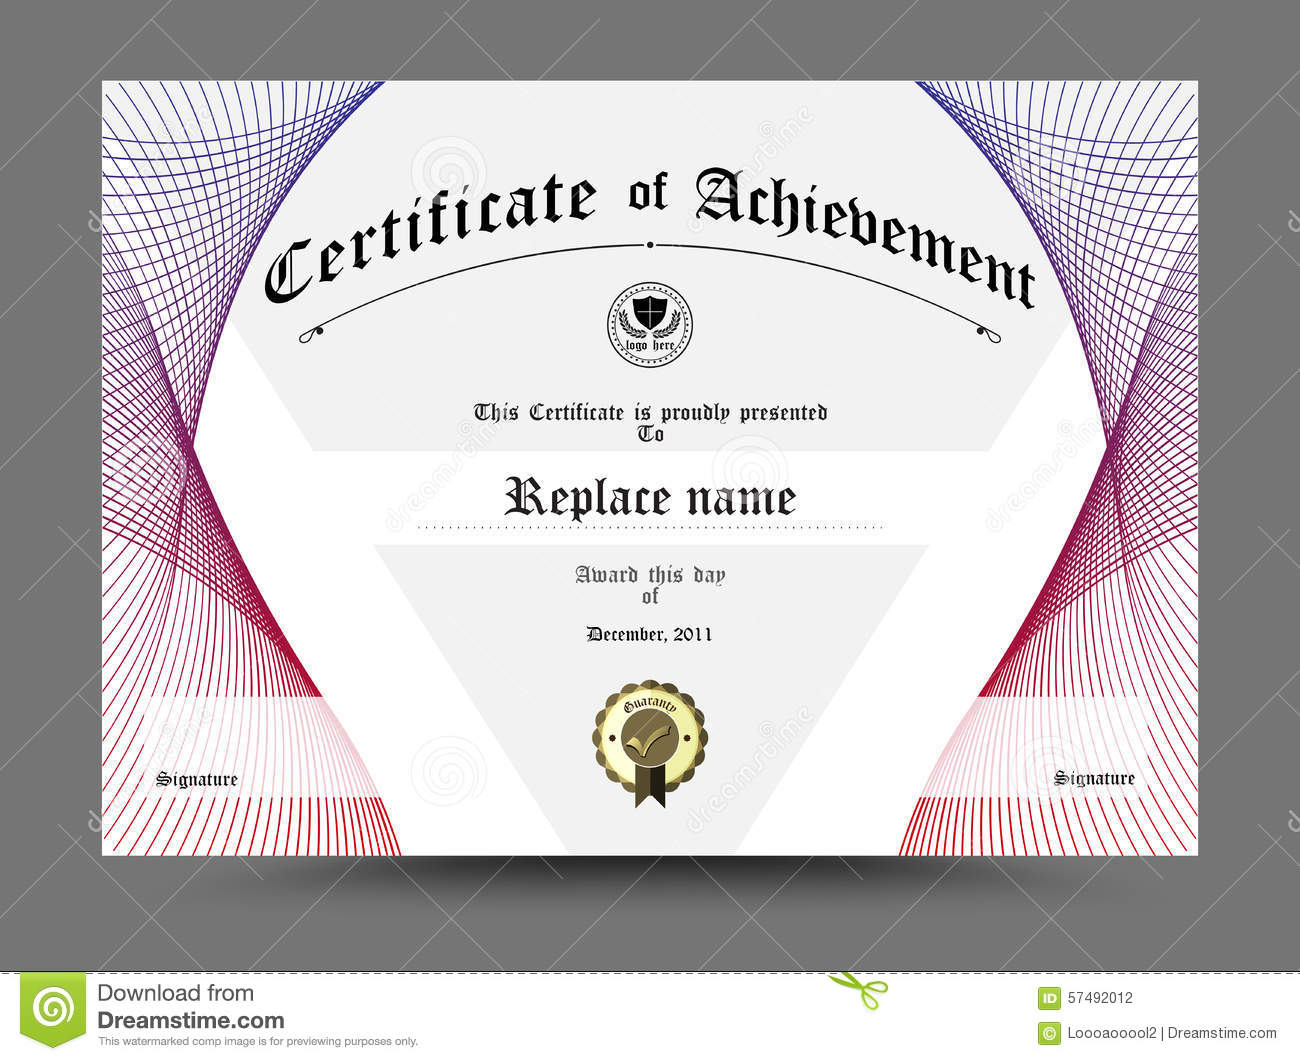 Certificate diploma of completion certificate of achievement d certificate diploma of completion certificate of achievement d yelopaper Choice Image